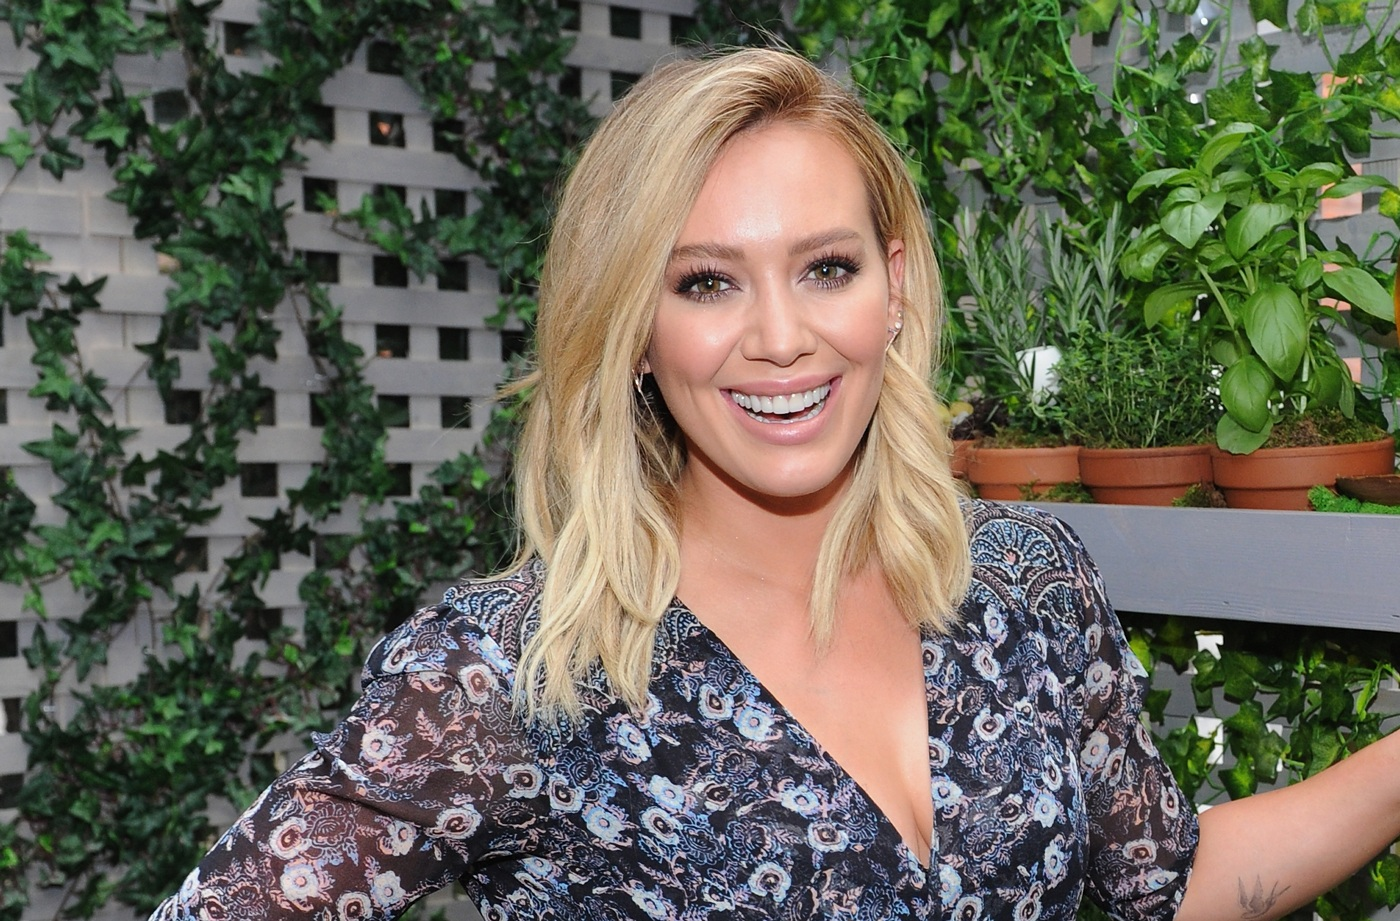 Thumbnail for Hilary Duff swears by these 2 natural oils for treating stretch marks during pregnancy